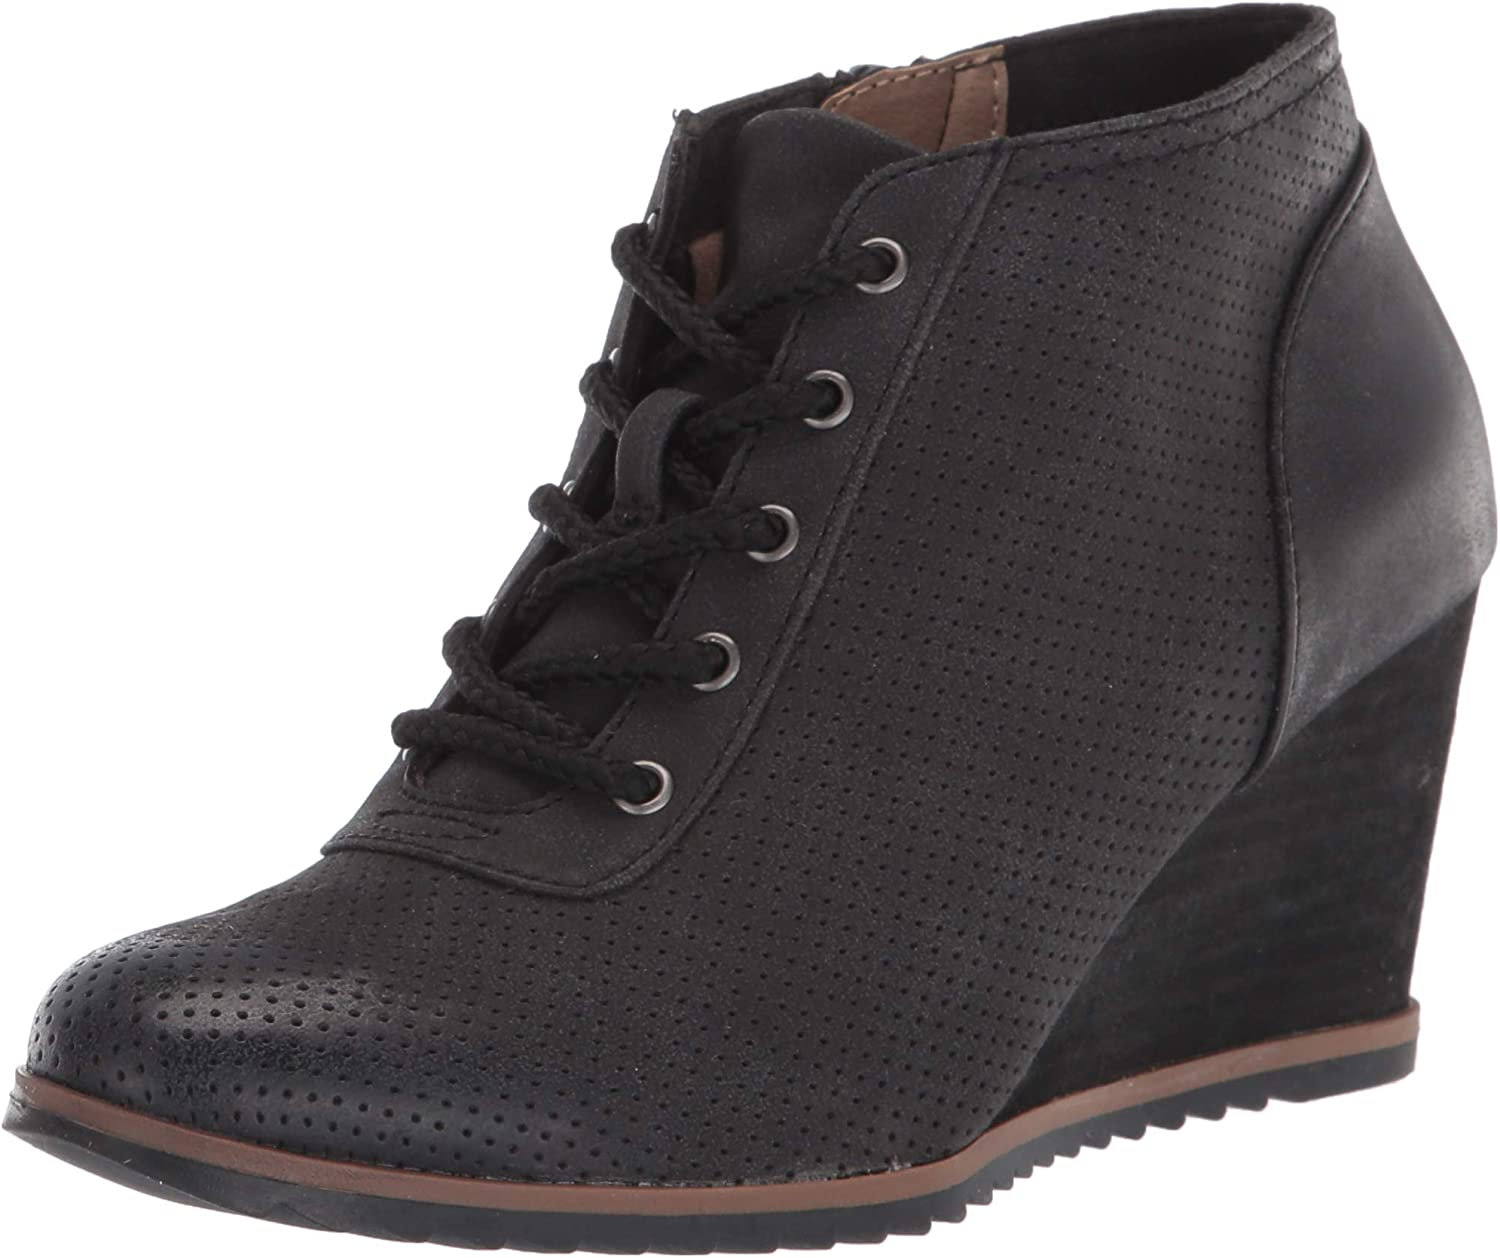 SOUL Naturalizer Women's Highfive Max 72% OFF Boot Shooties Fashion New product